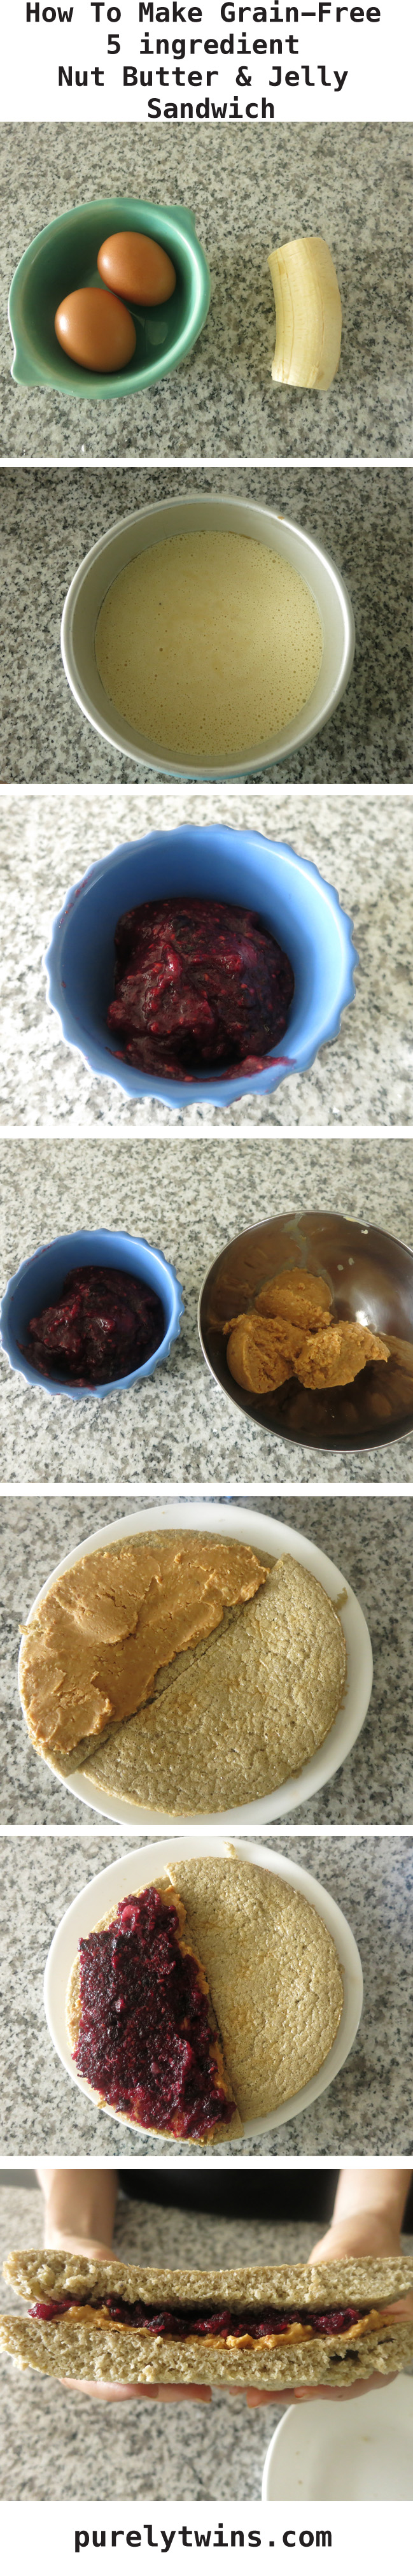 how to make 5 ingredient nut butter and jelly sandwich grain-free purelytwins